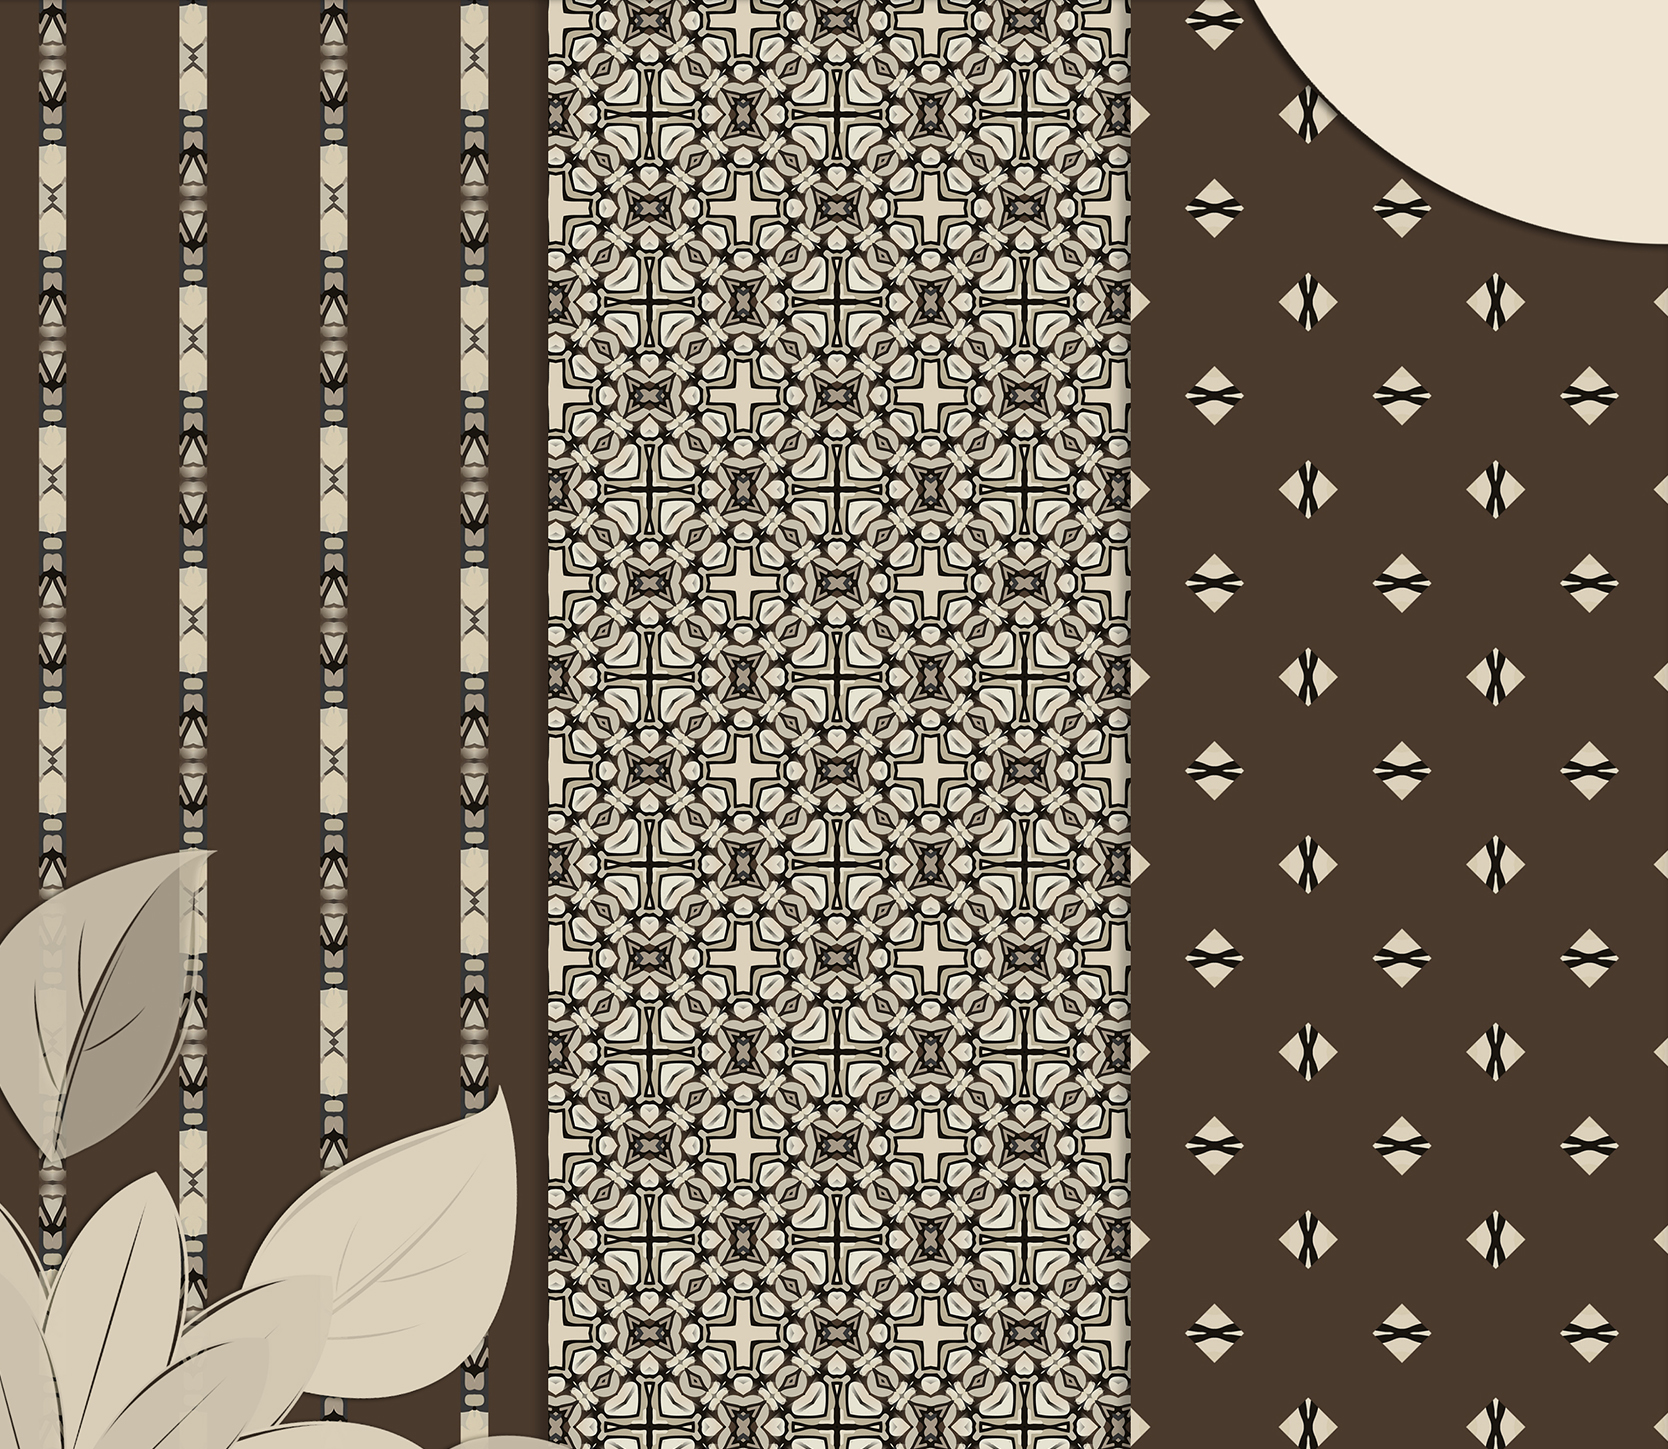 Brown-Gray abstract Digital Scrapbook Paper example image 4